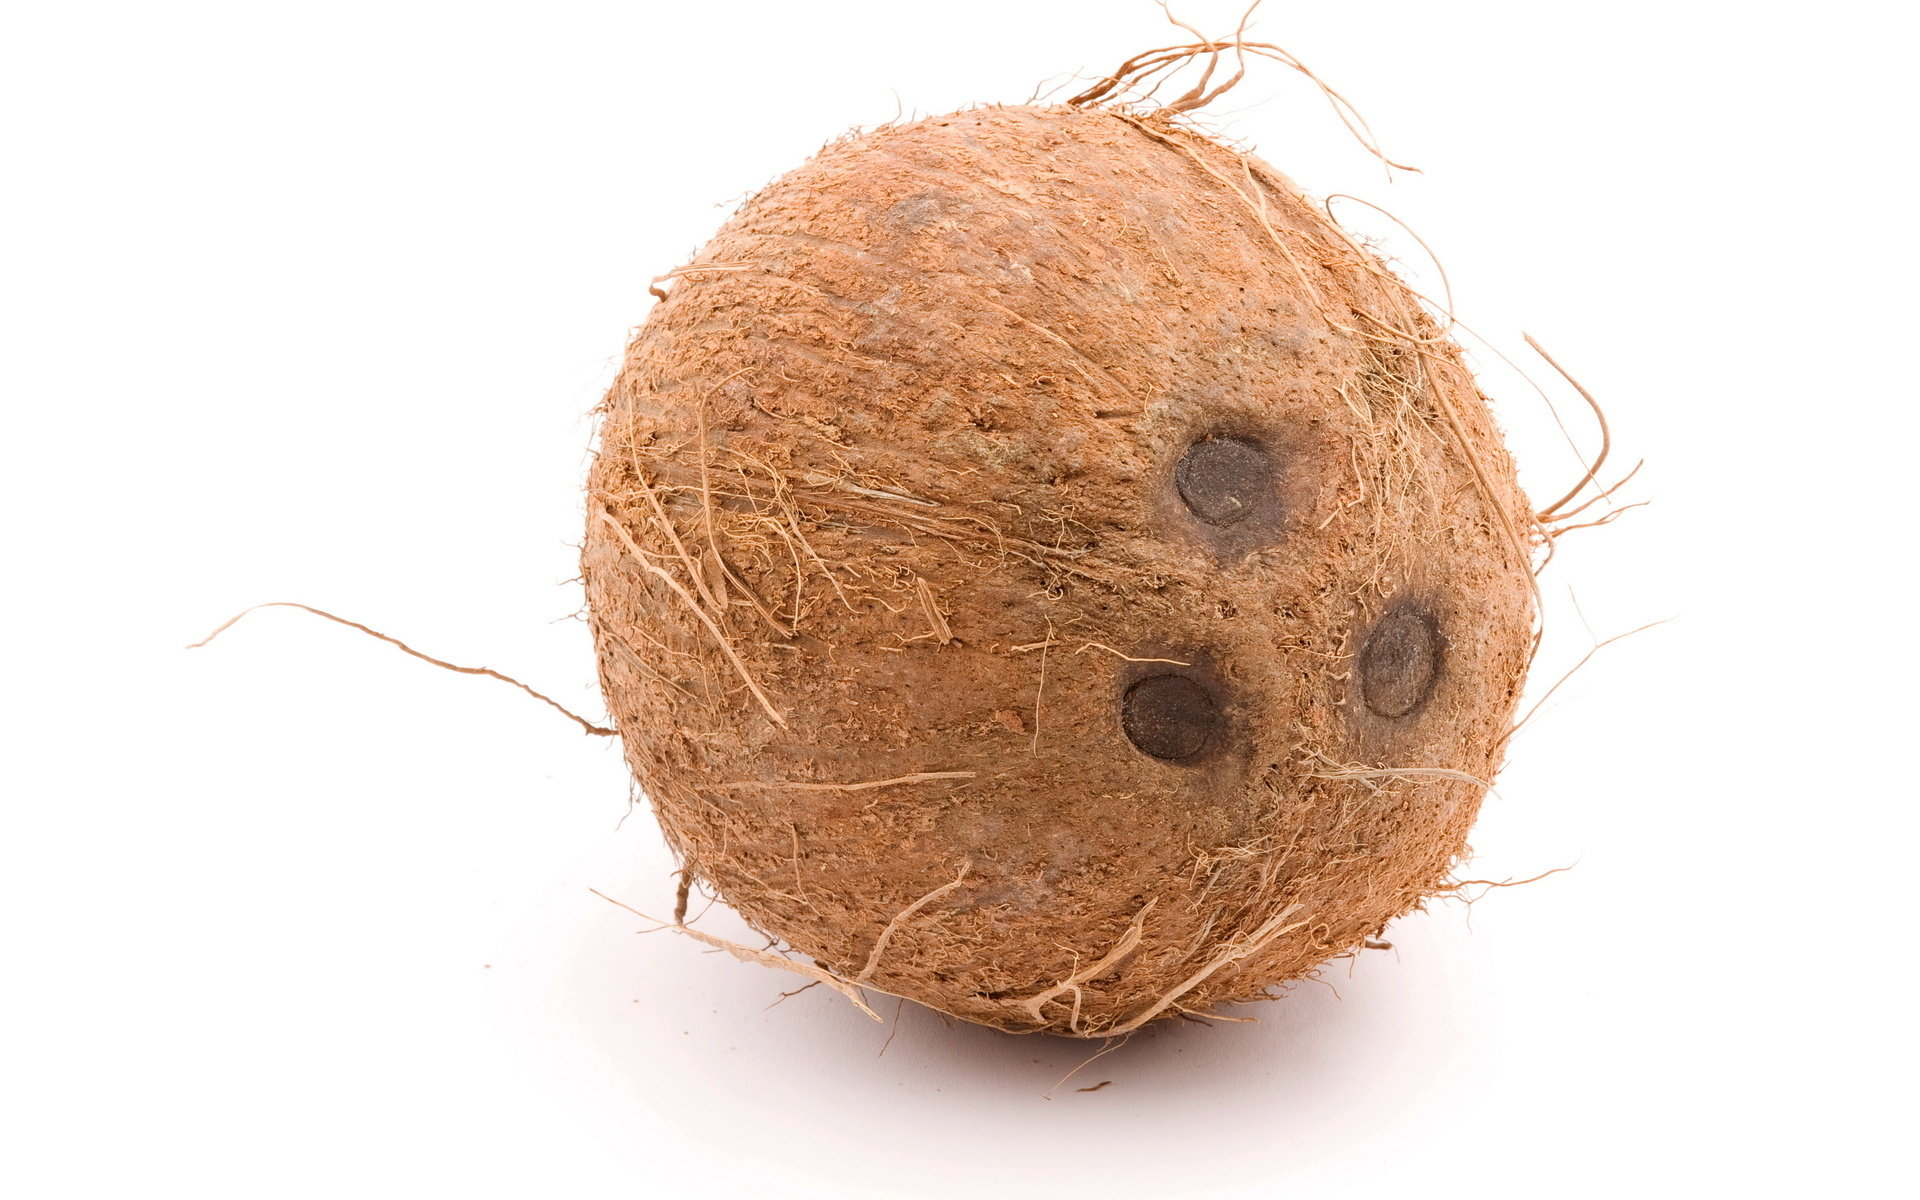 Free Coconut high quality wallpaper ID:402973 for hd 1920x1200 computer